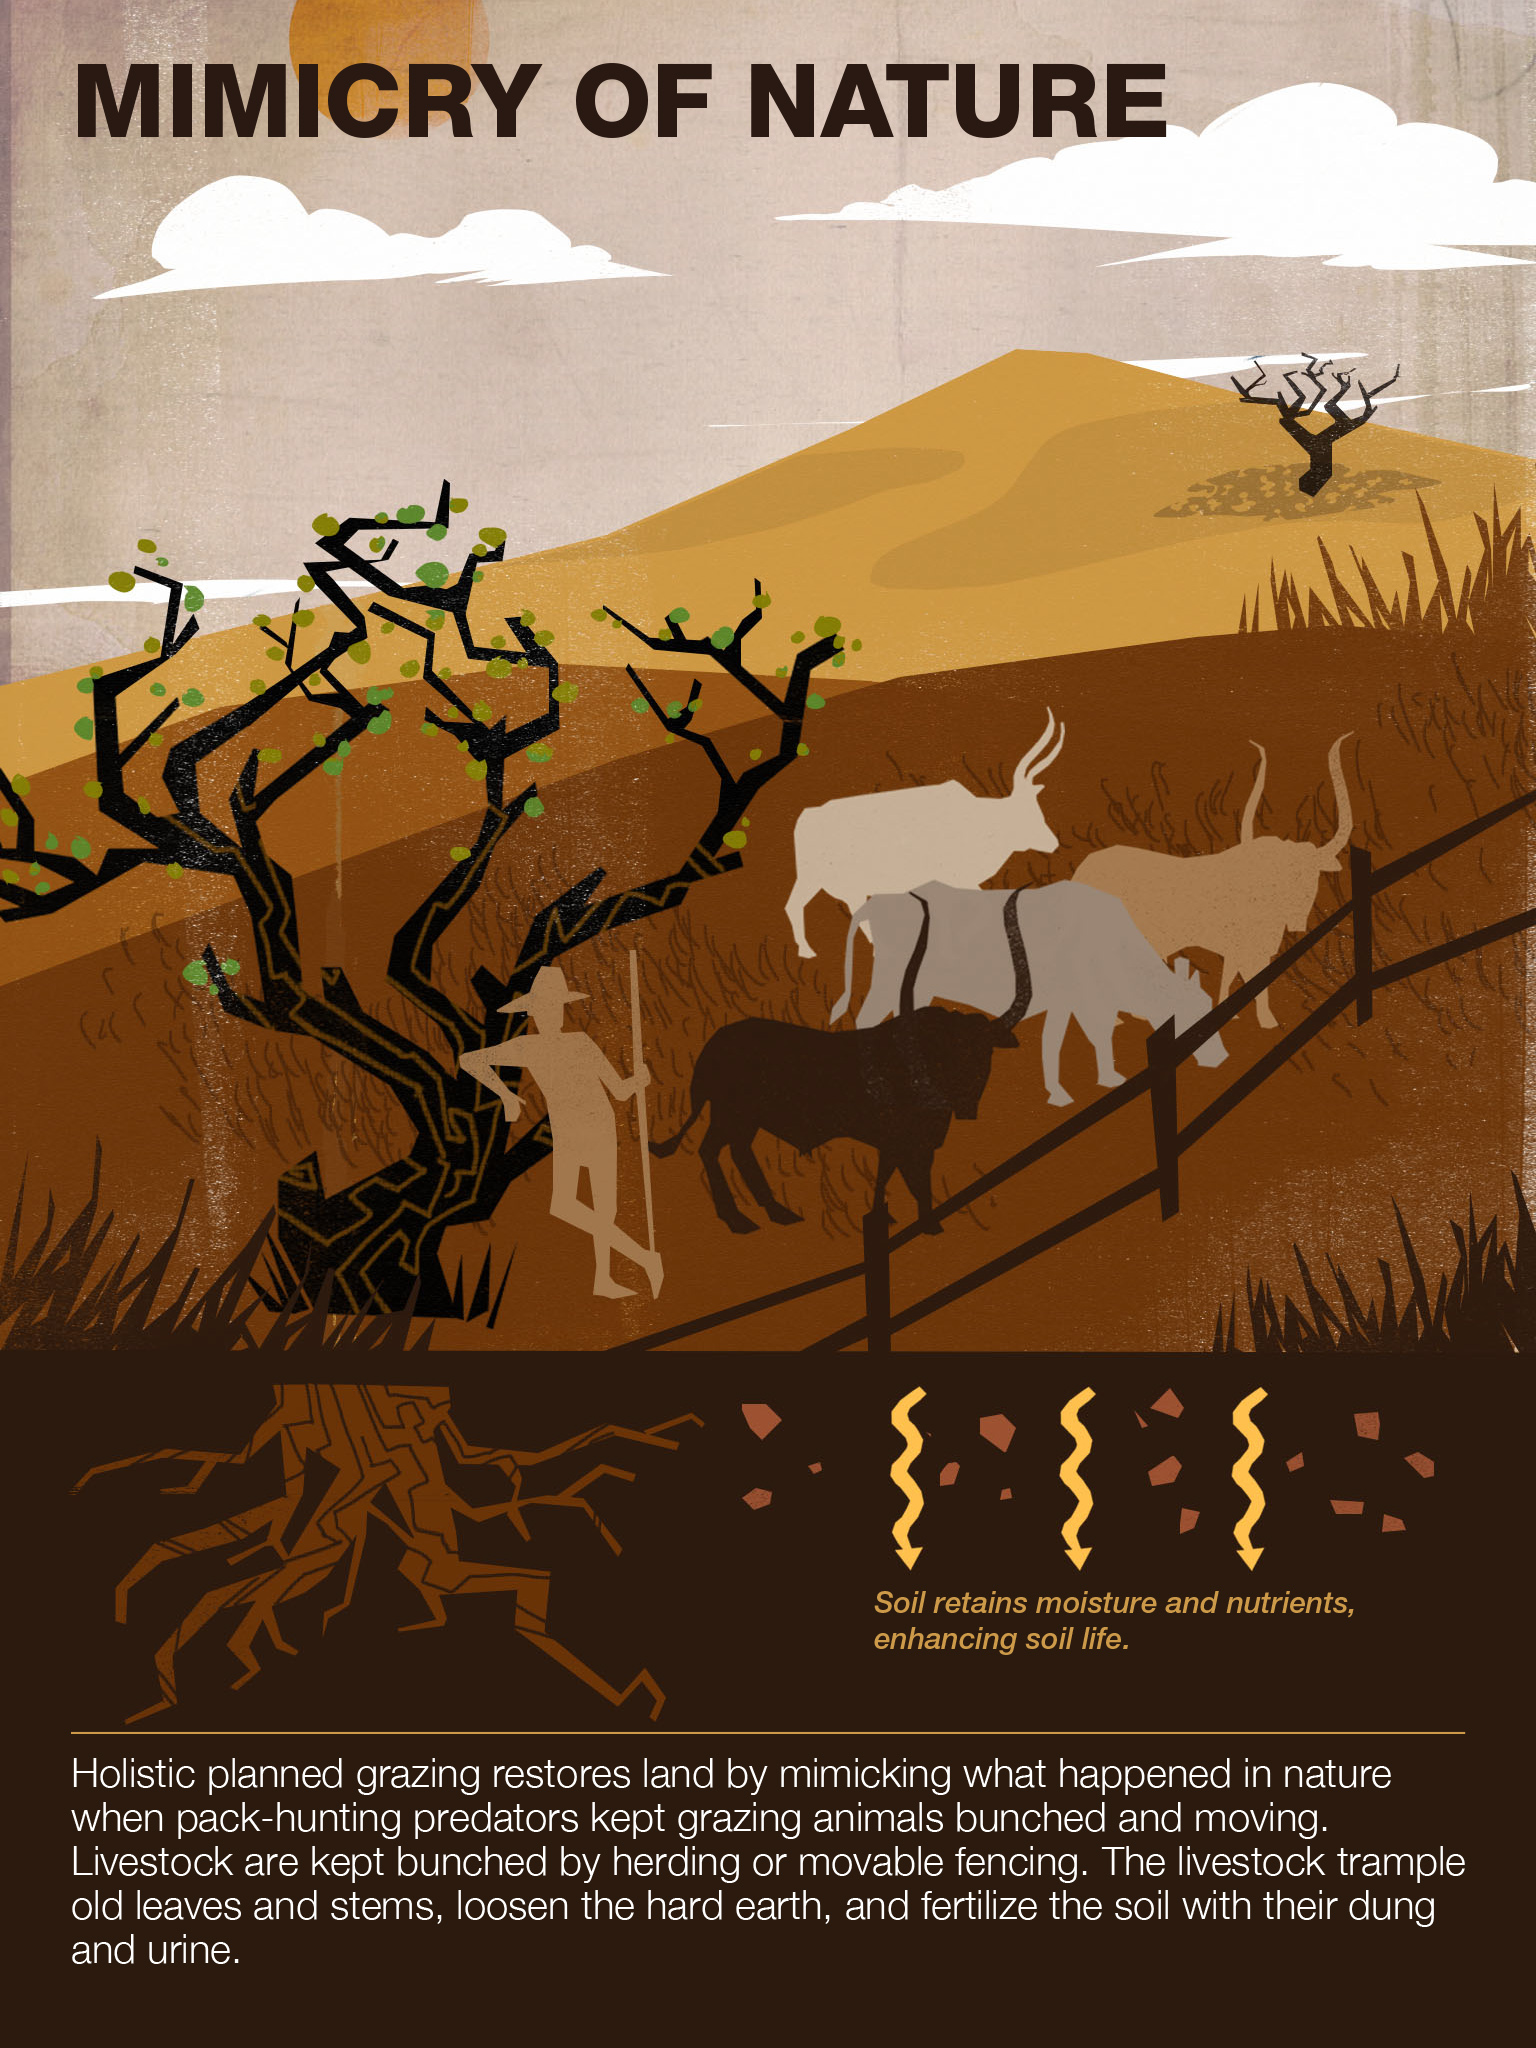 Mimicry of nature. A look at what Savory's holistic management strategy aims to accomplish.